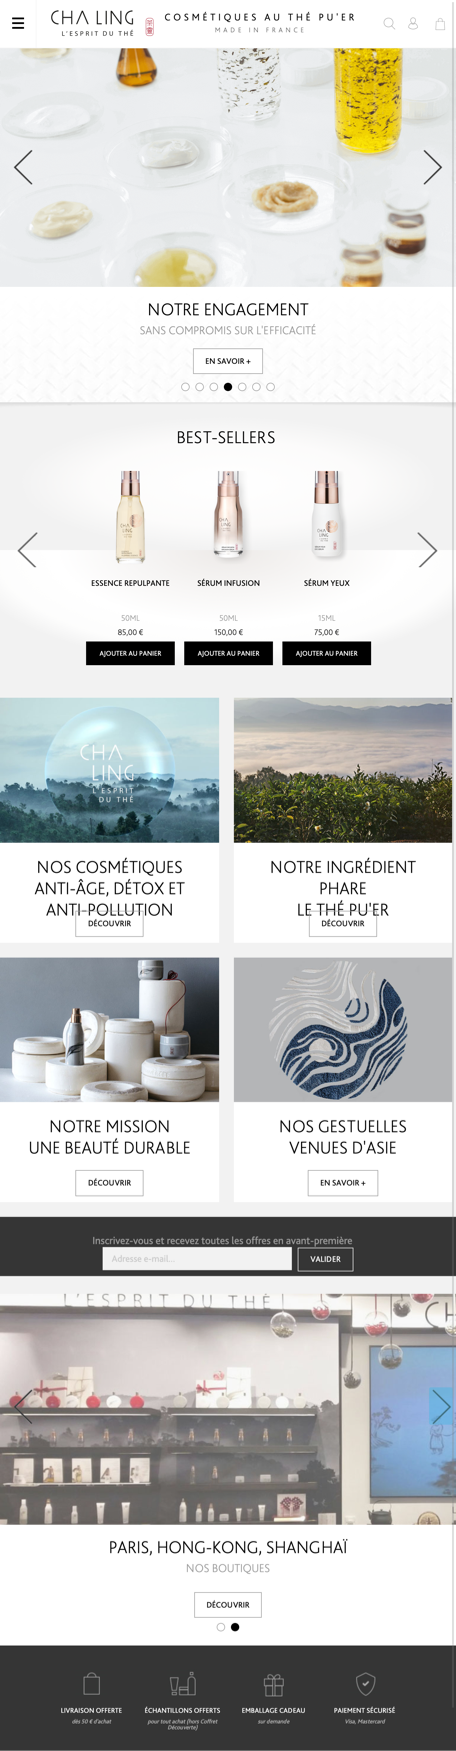 Agence-DND-Creation-Site-ECommerce-Cha-Ling